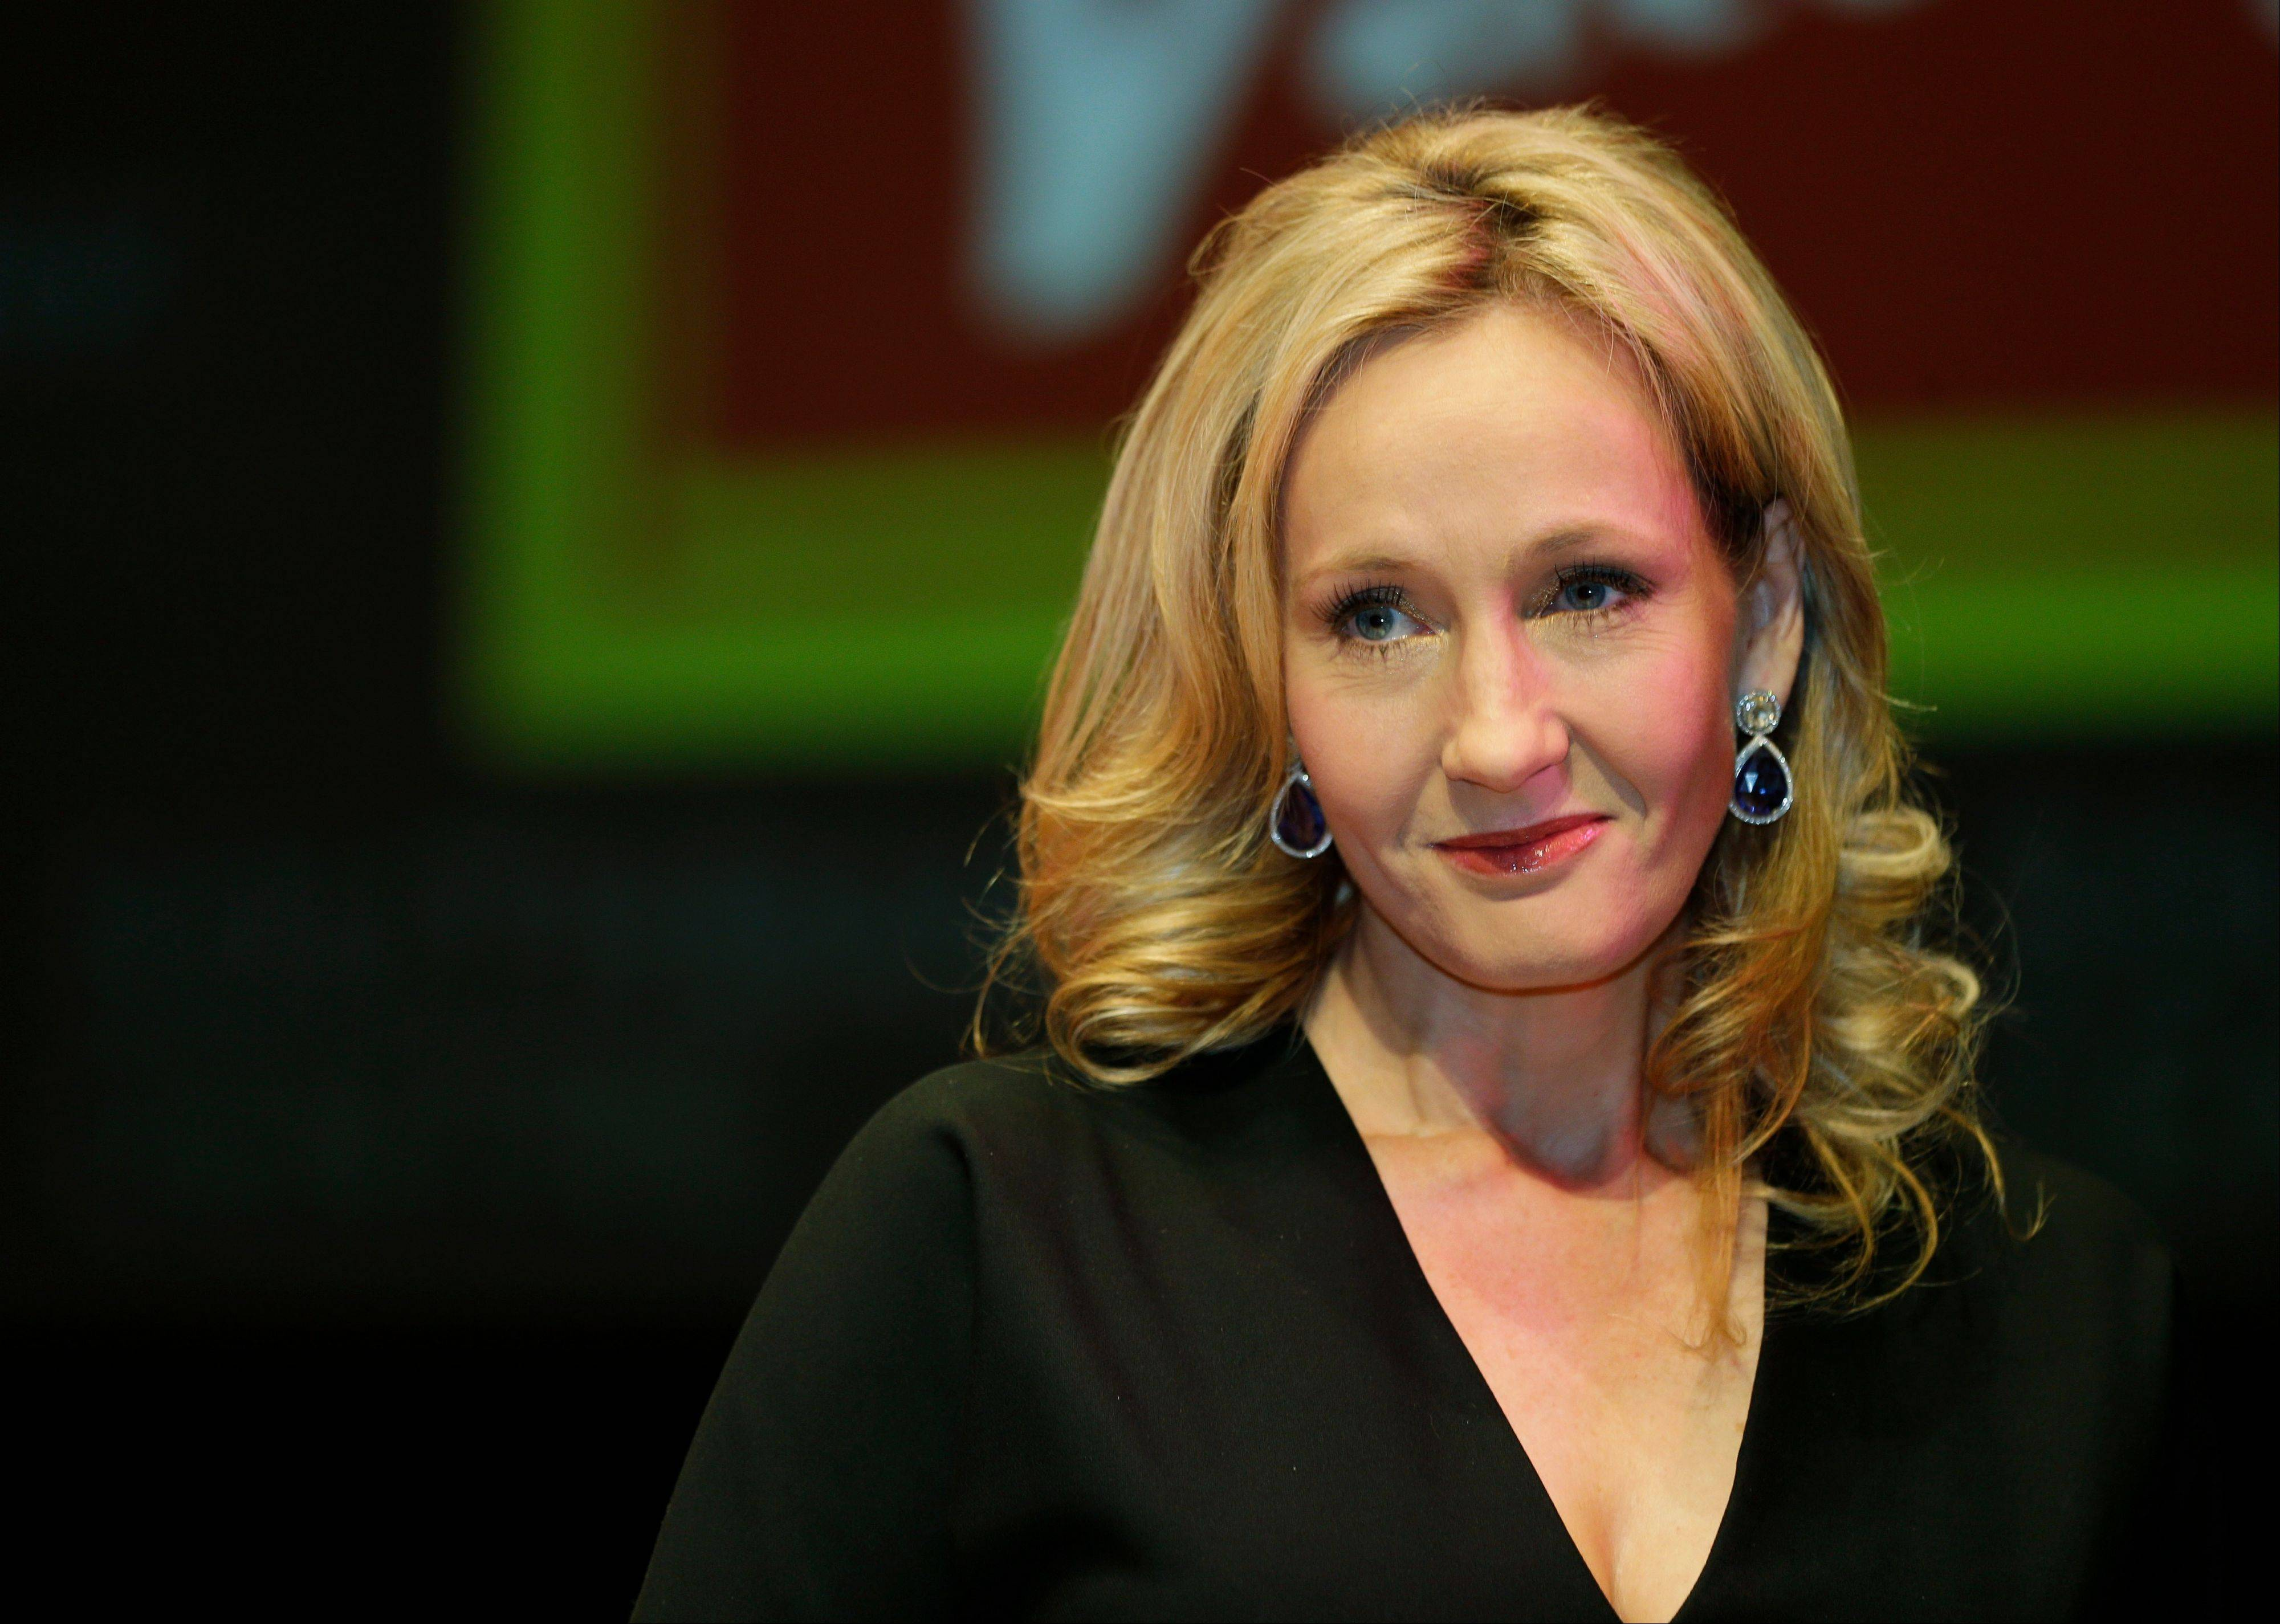 British author J.K. Rowling confirmed in a statement released by her publicist that �The Cuckoo�s Calling,� a detective novel which won critical acclaim, was penned under her pseudonym Robert Galbraith.